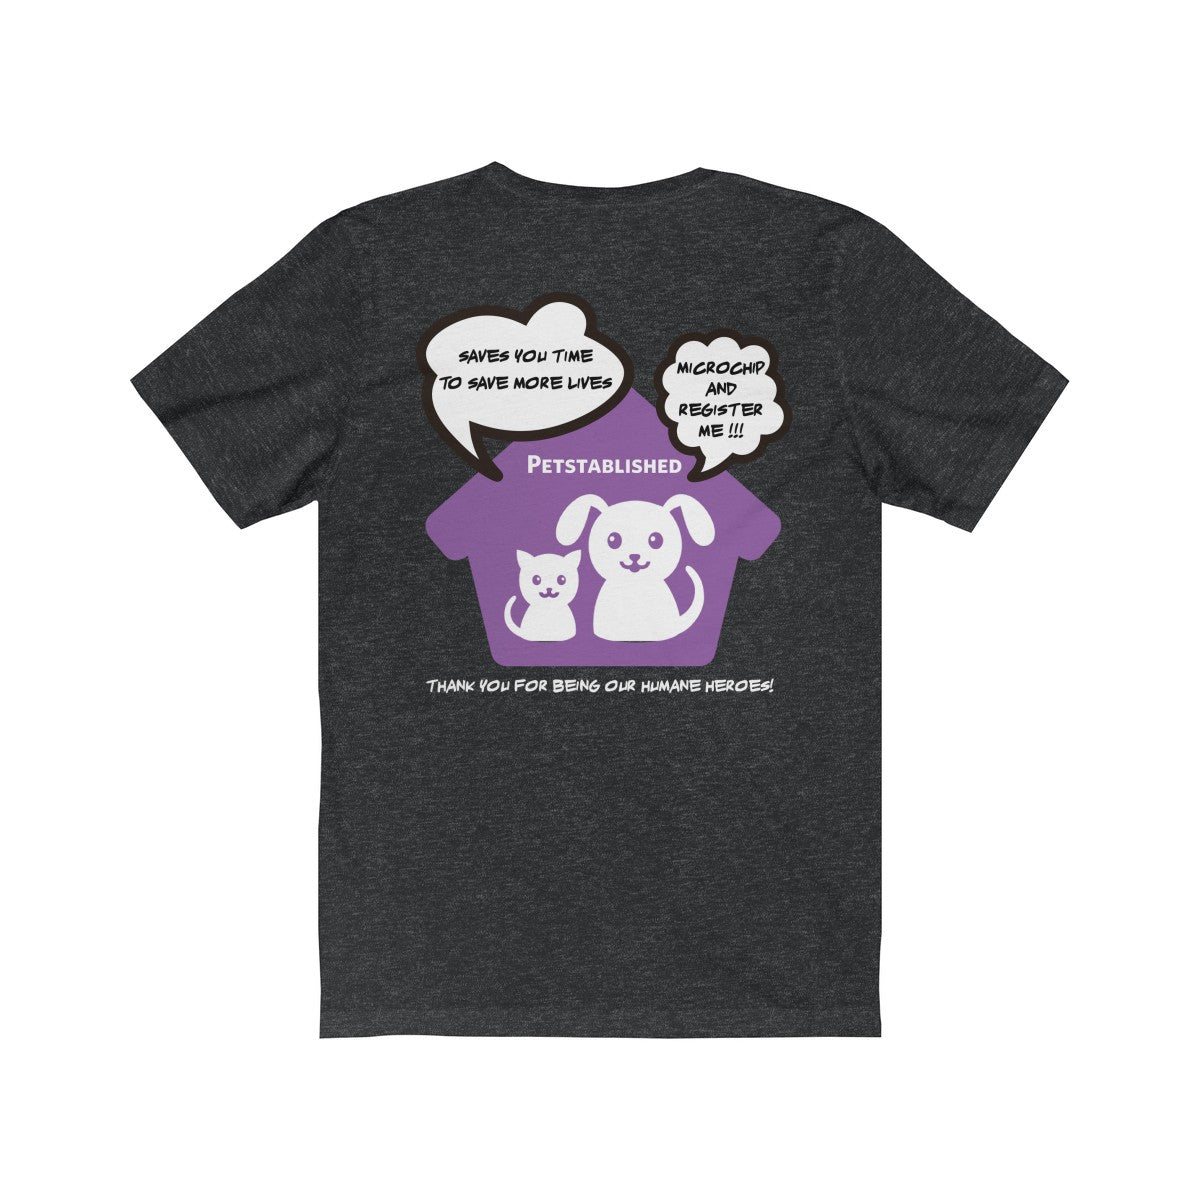 Expo Tee - Susan (XXL) - Allthingsfrenchie LLC